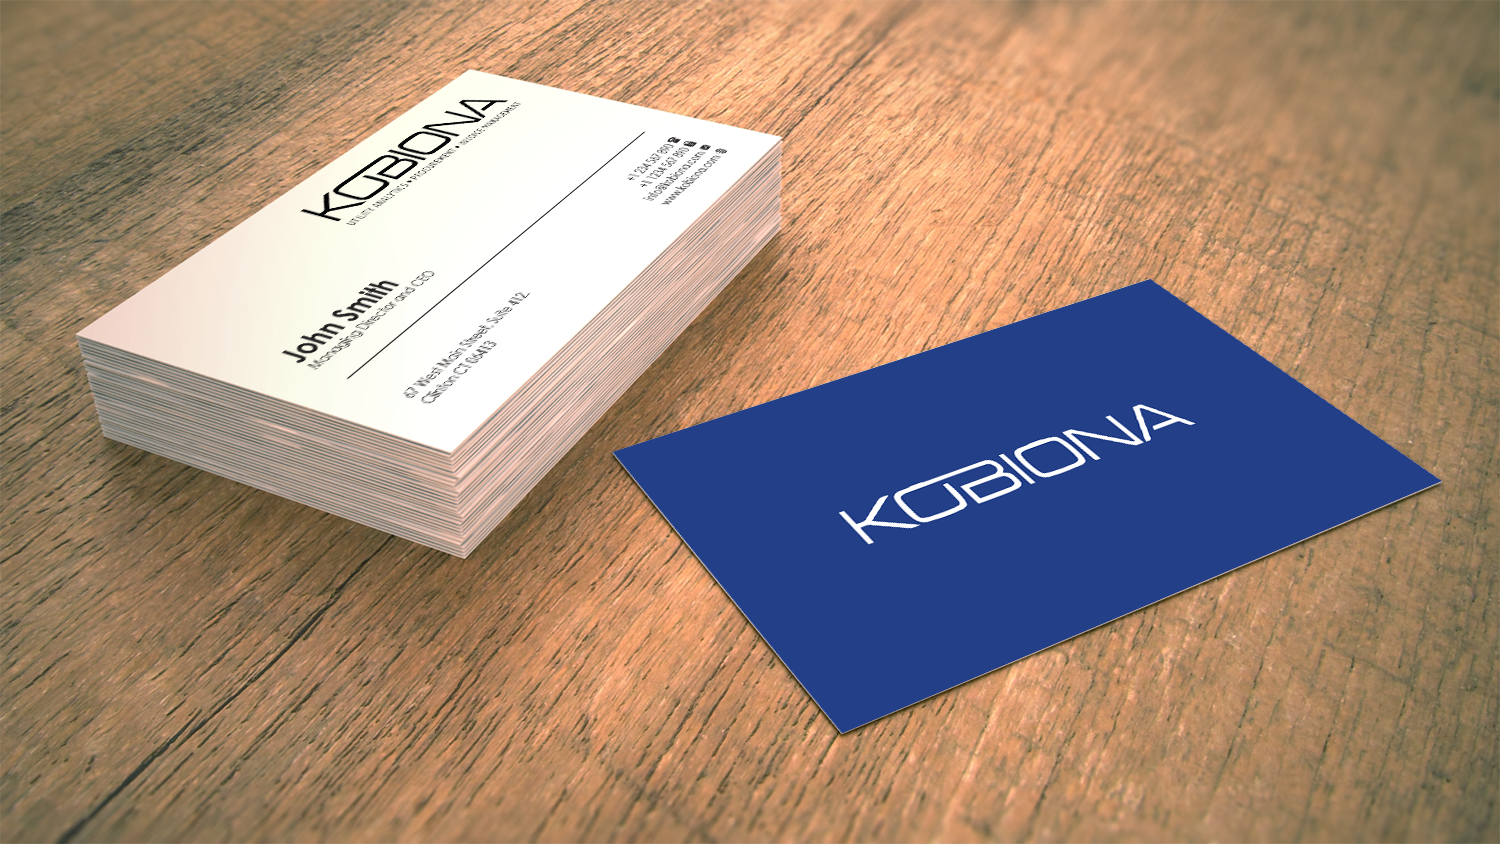 Professional upmarket business consultant business card design for business card design by cun for mr design 17063788 colourmoves